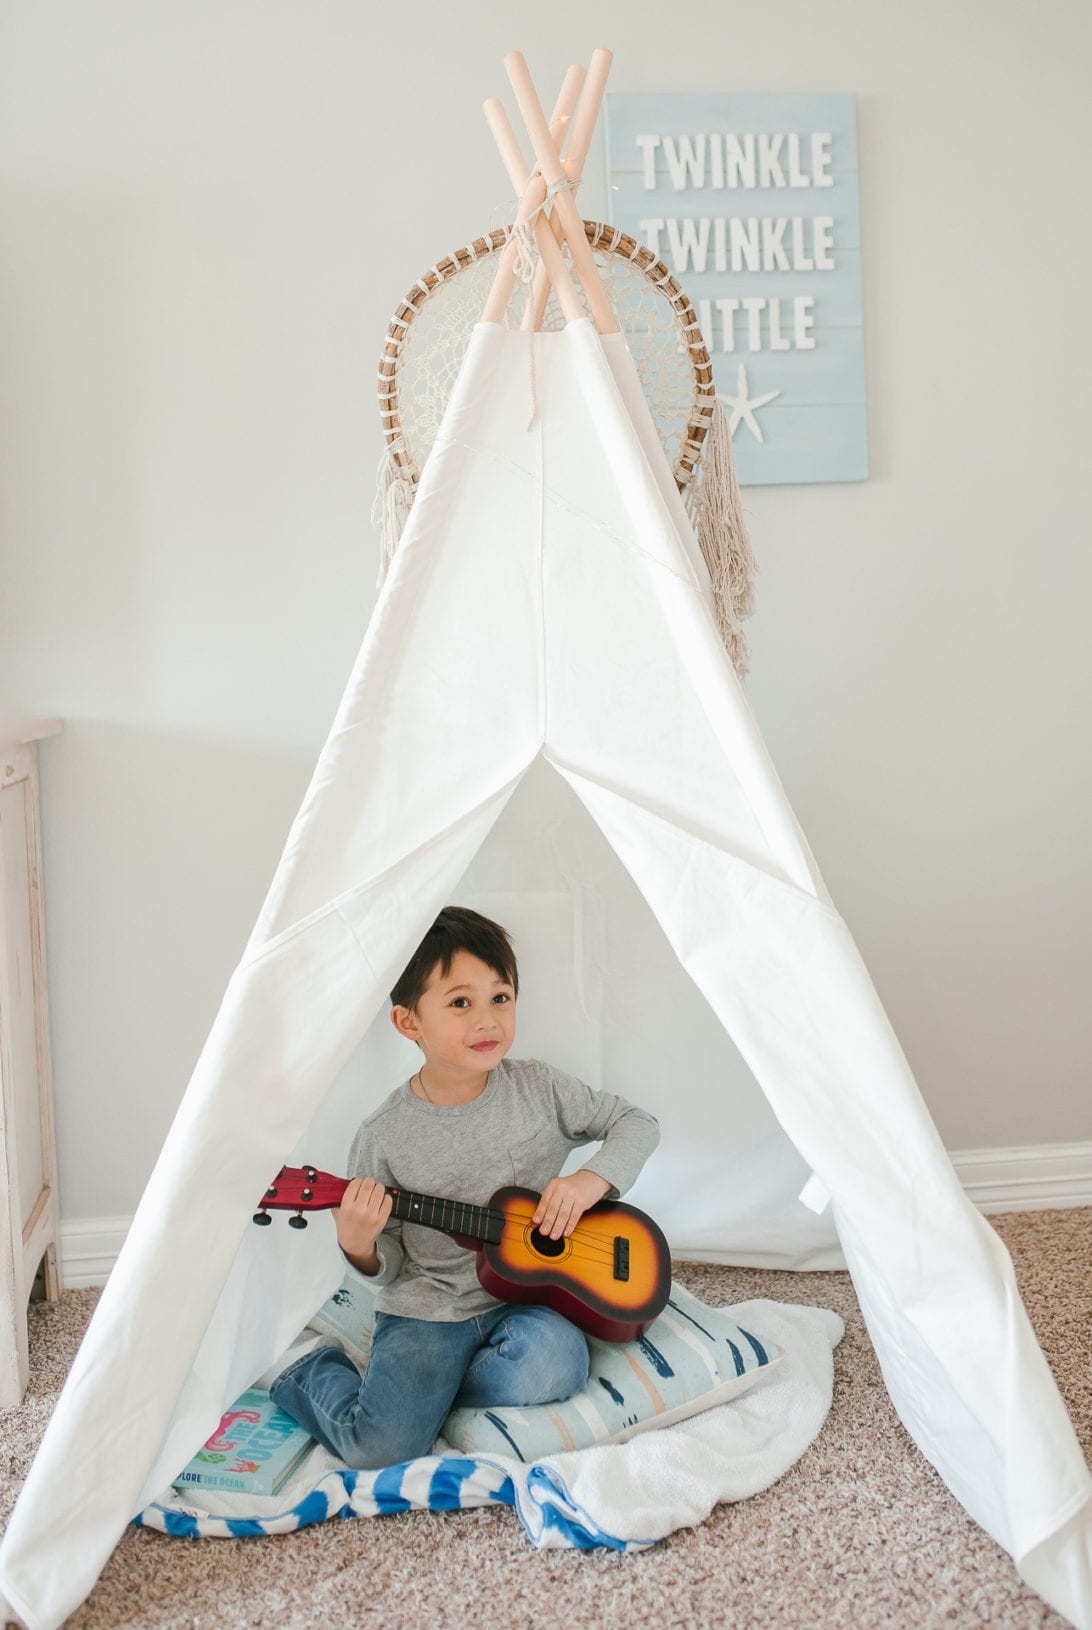 children's teepee, tent, white tent, game room, Portable Kids Cotton Canvas Teepee Indina Play Tent Playhouse, Class White One Window Style